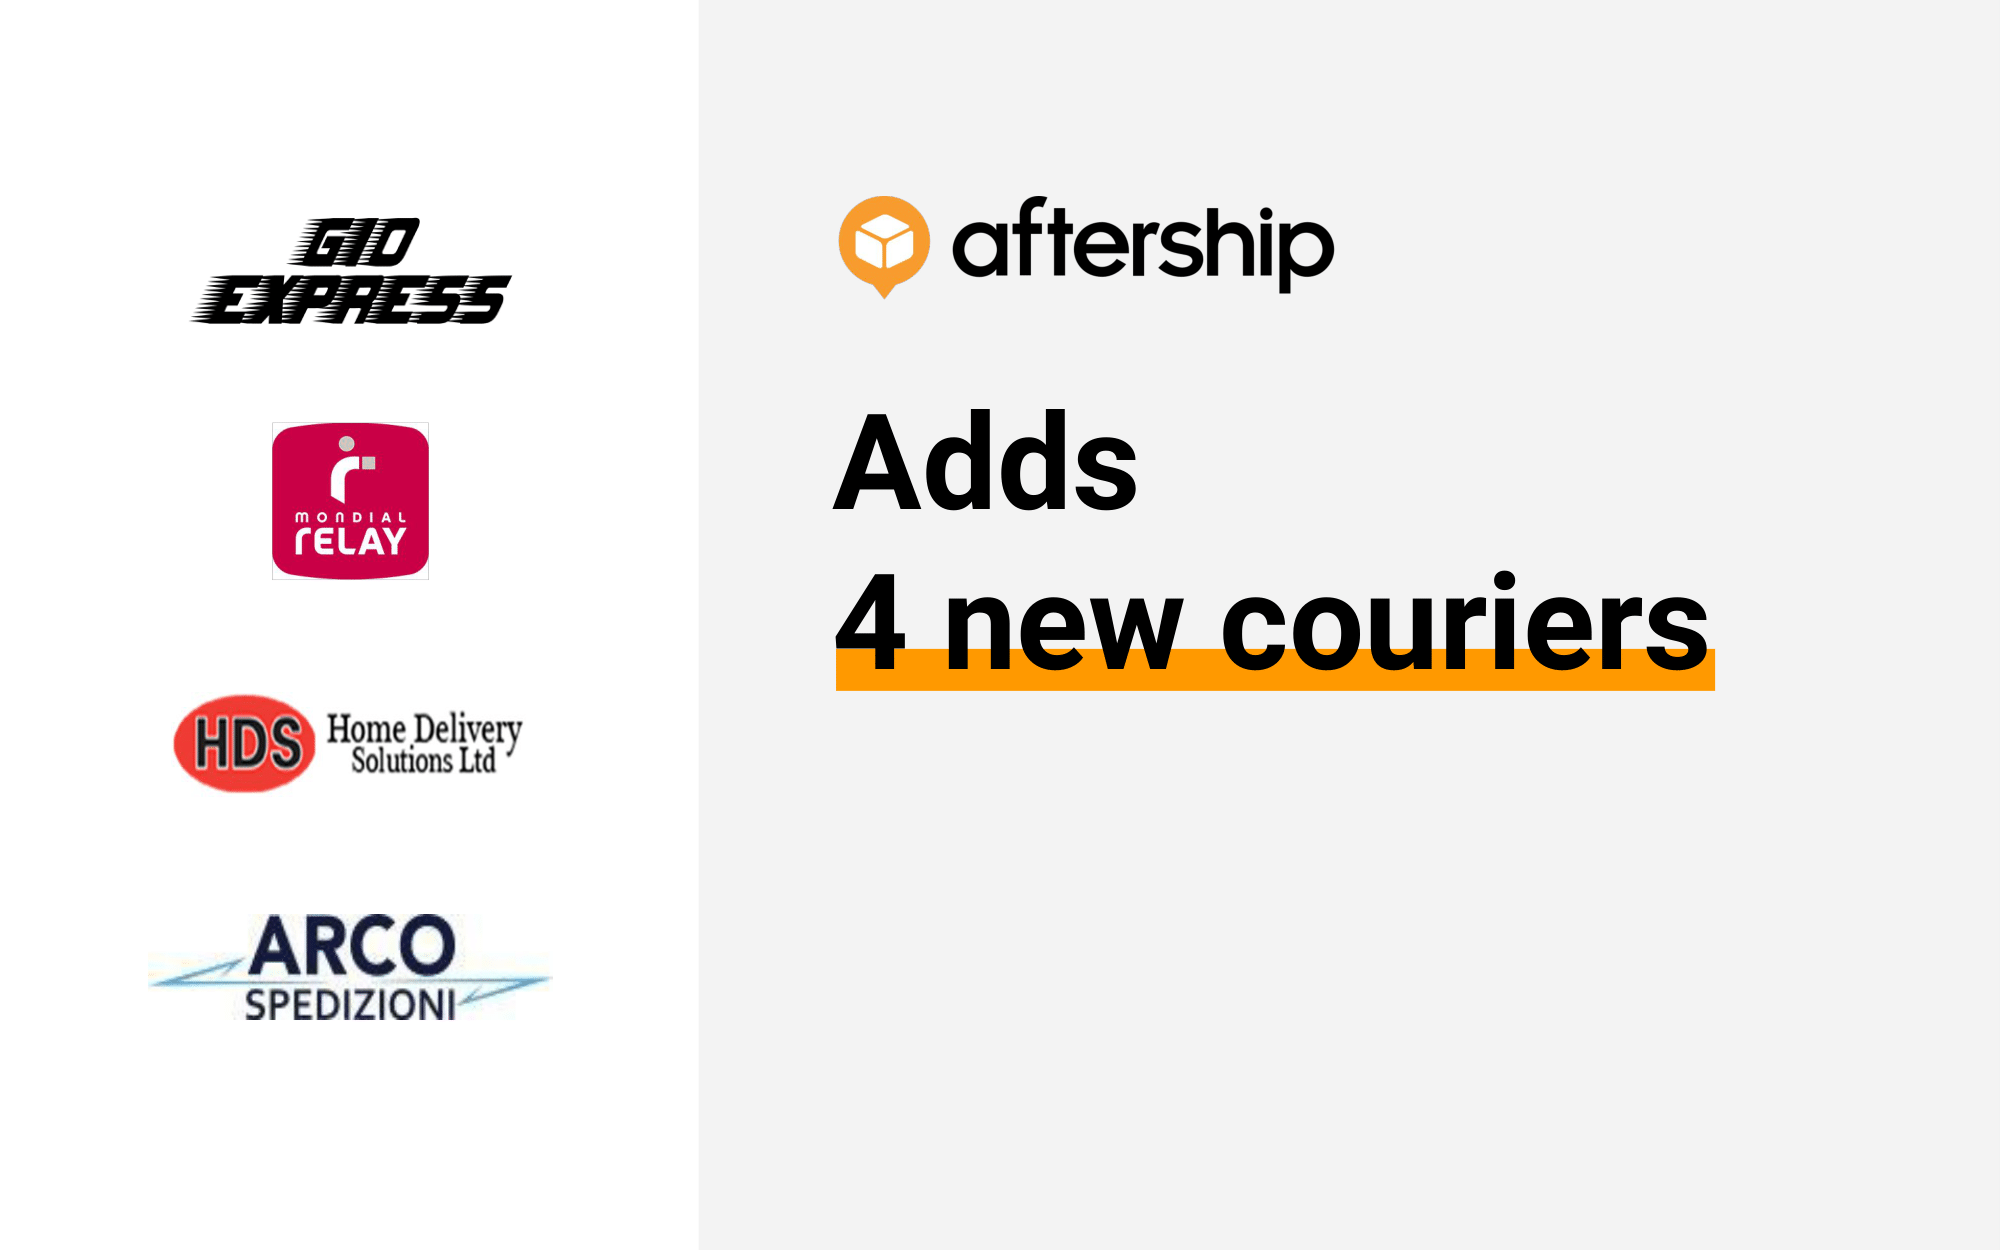 AfterShip adds 4 new couriers this week (24 August 2020 to 28 August 2020)